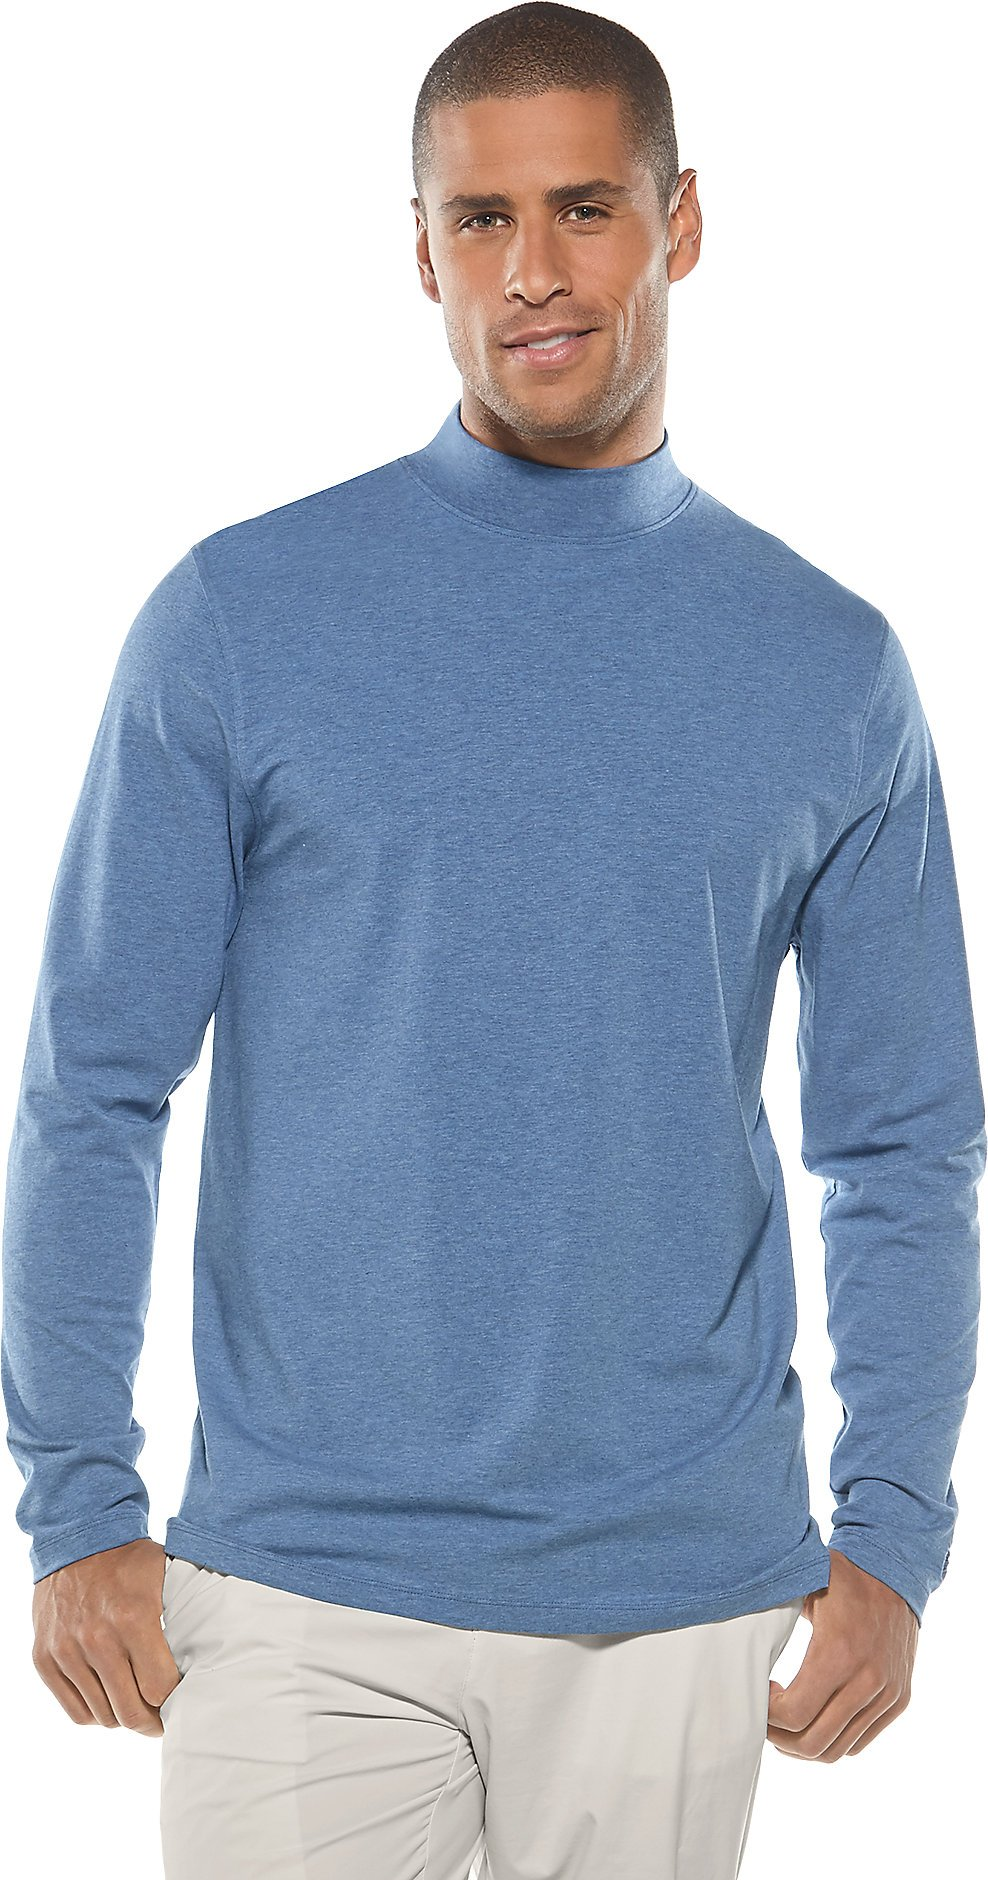 Coolibar UPF 50+ Men's Mulford Mock Neck Tee - Sun Protective (Small- Pacific Heather)